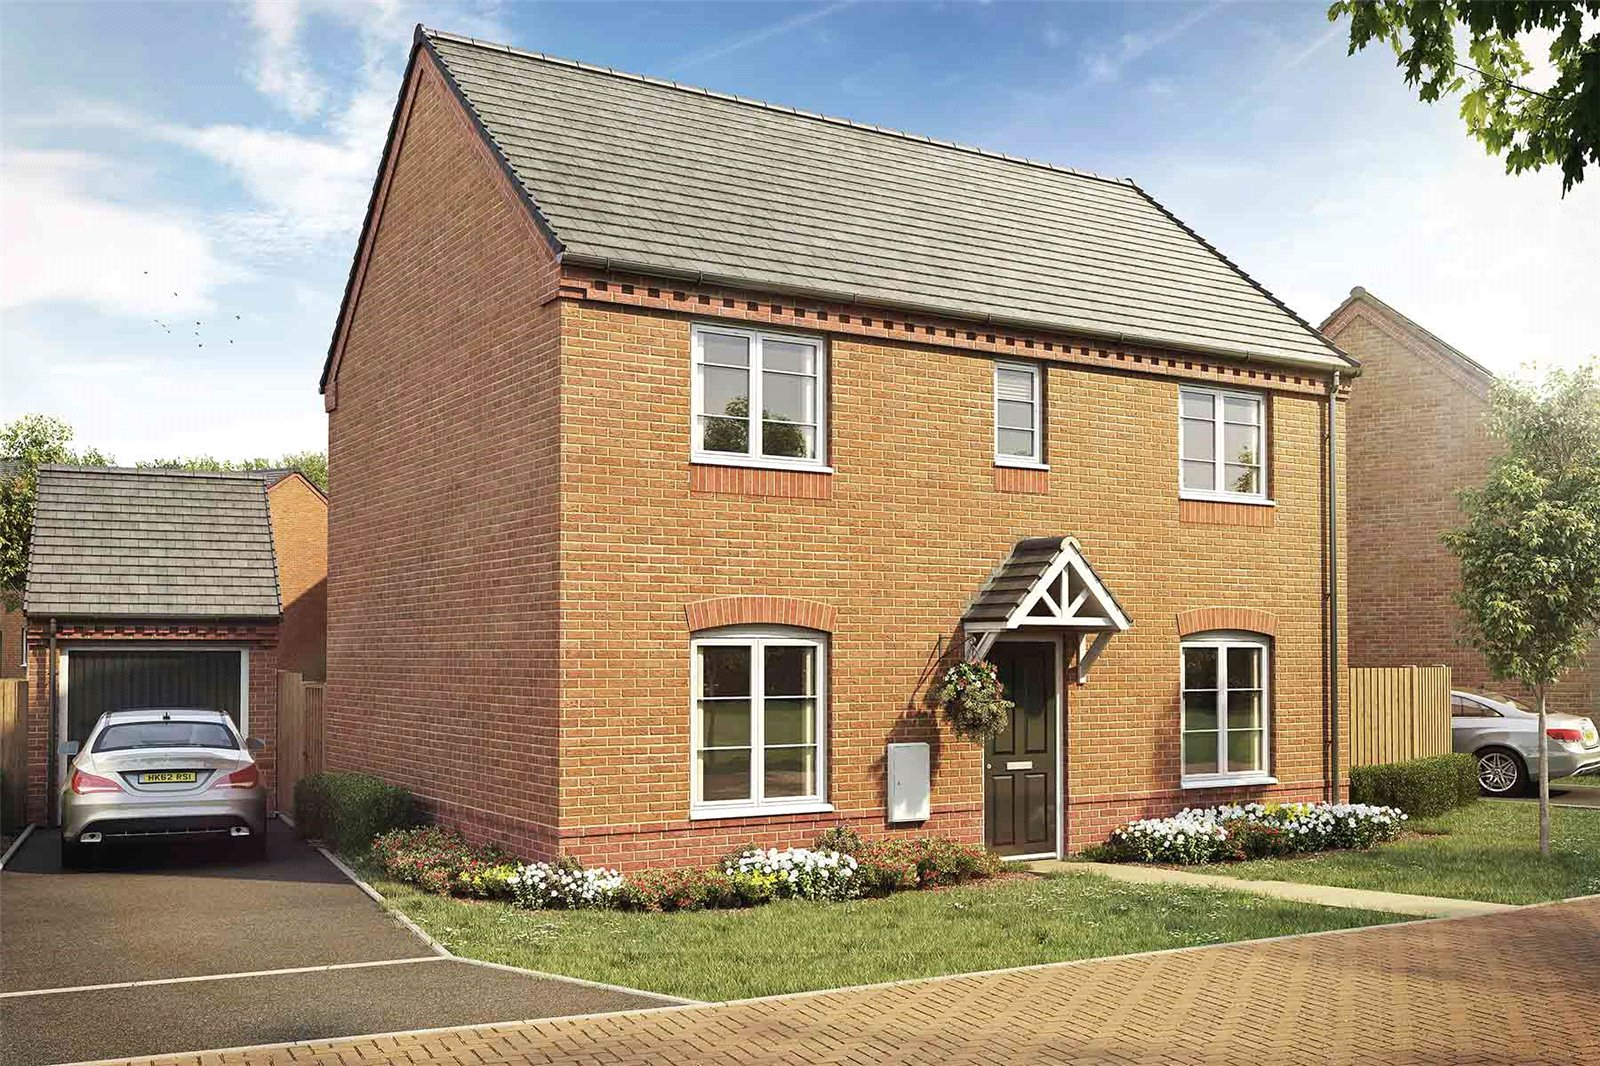 3 Bedrooms Property for sale in Powyke View Powick Worcestershire WR2